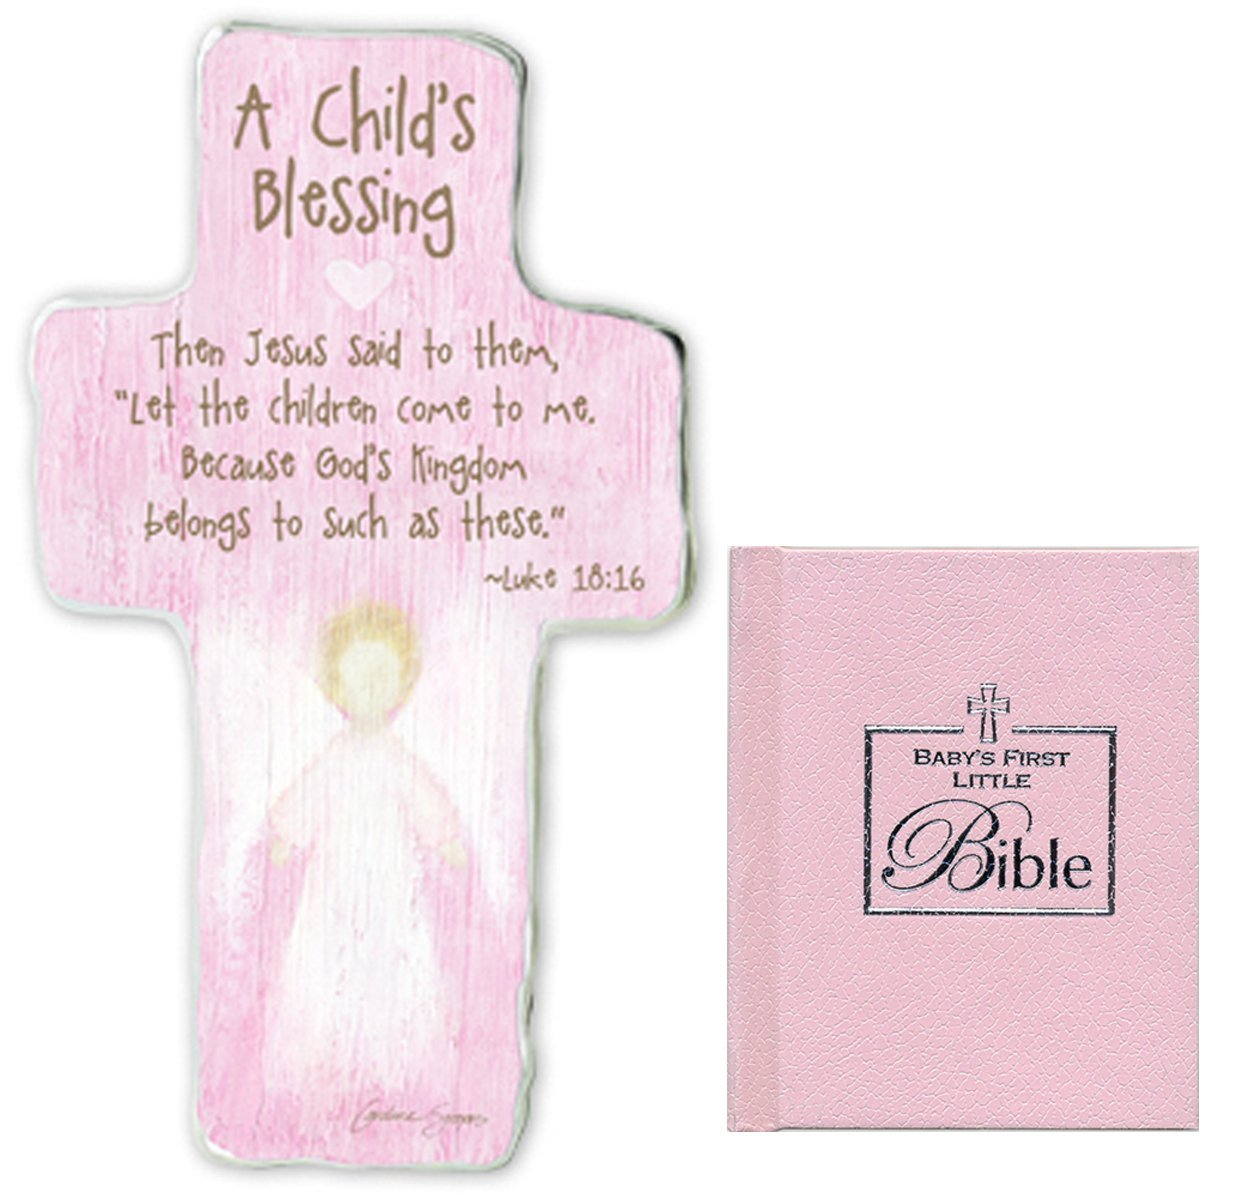 Christening Gifts For Girl Gift Set Pink Caroline Simas Artmetal Cross For Baby Girls And Baby S First Bible Baptism Gifts For Girls From Godmother